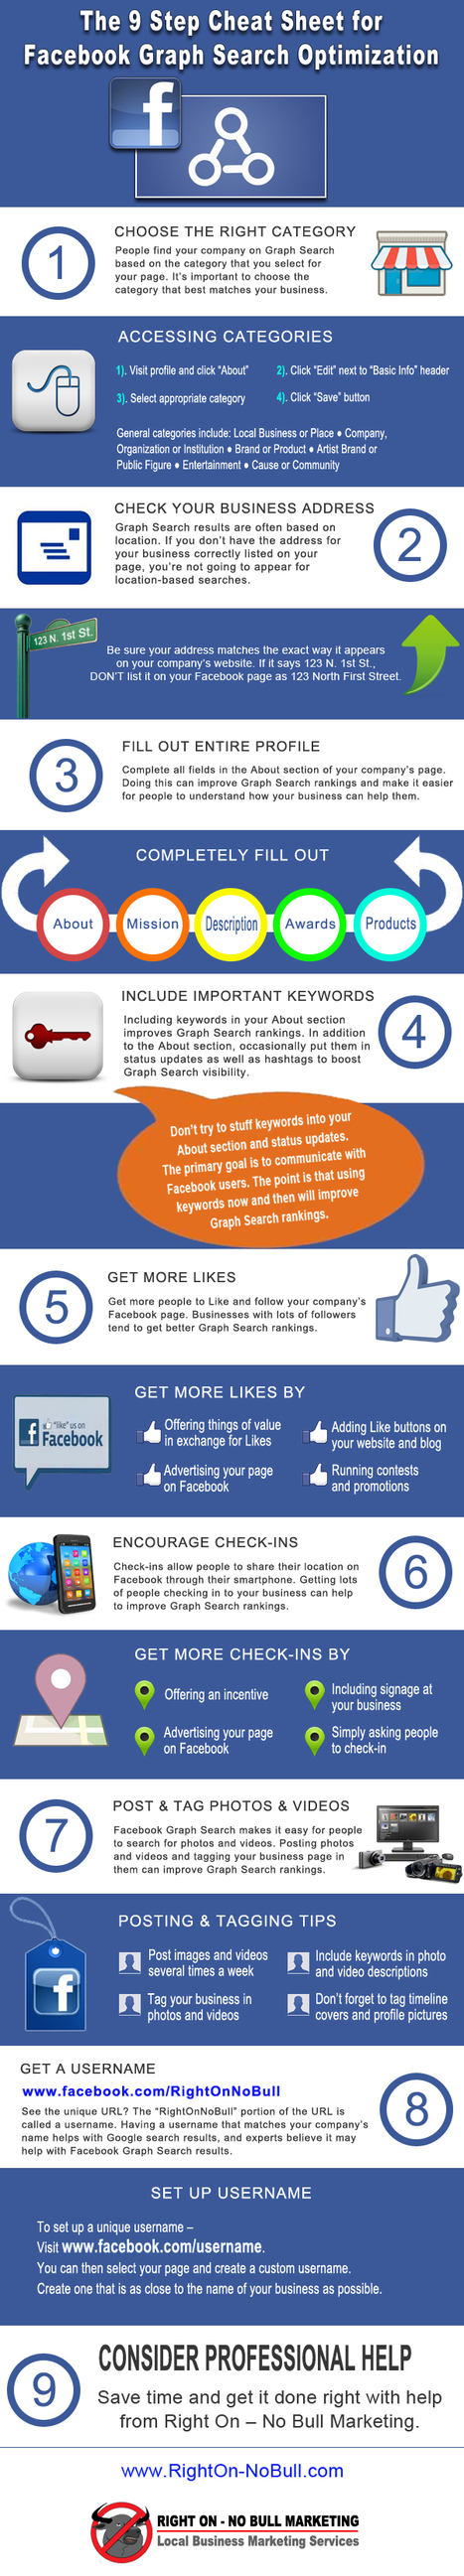 9 Steps for Facebook Graph Search Optimization [INFOGRAPHIC] | Super Social Media | Scoop.it